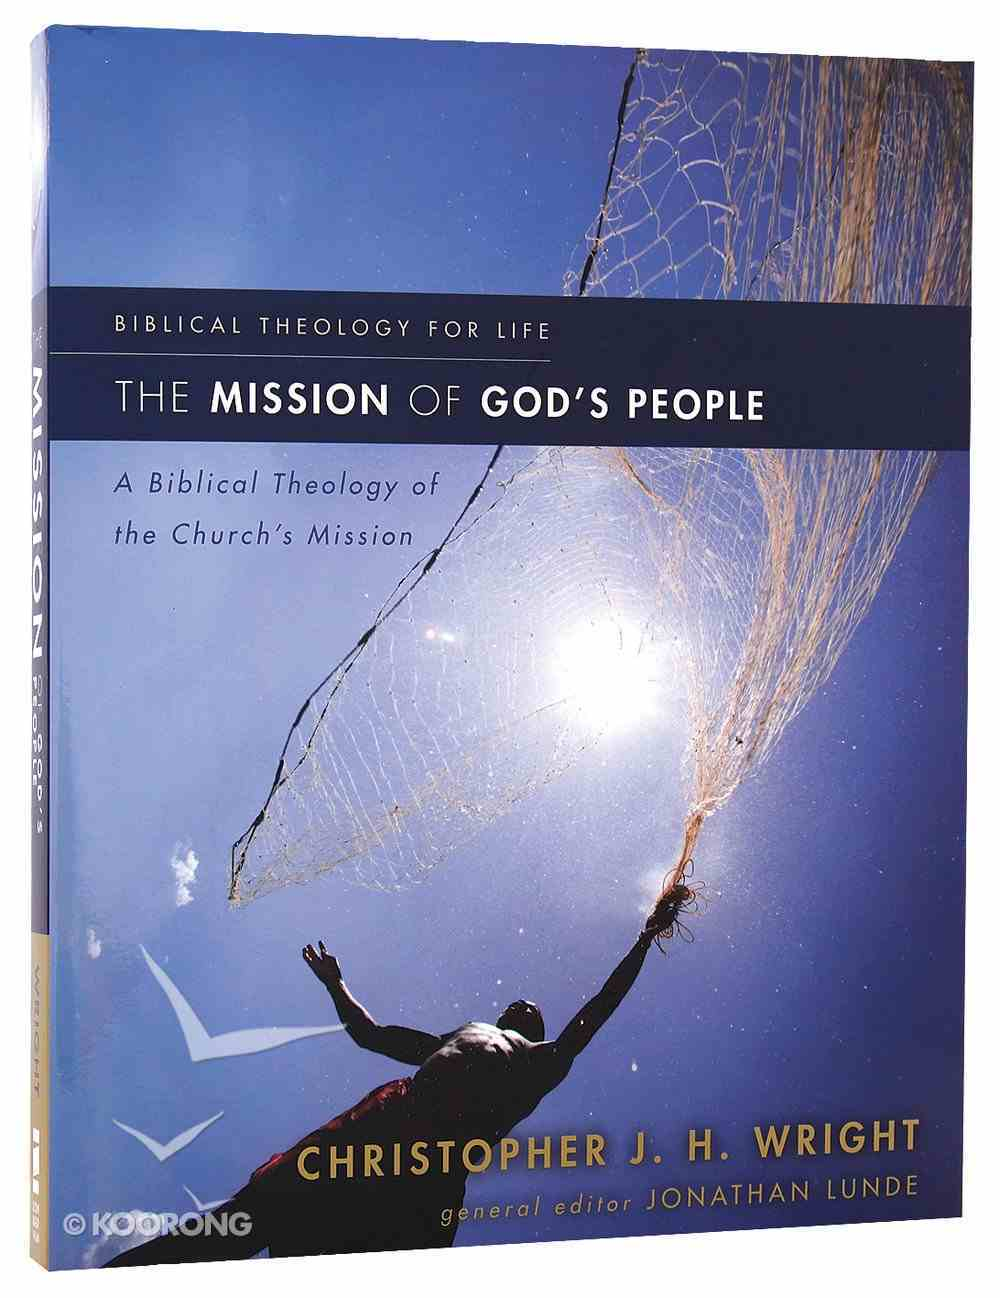 The Mission of God's People: A Biblical Theology of the Church's Mission (Biblical Theology For Life Series) Paperback